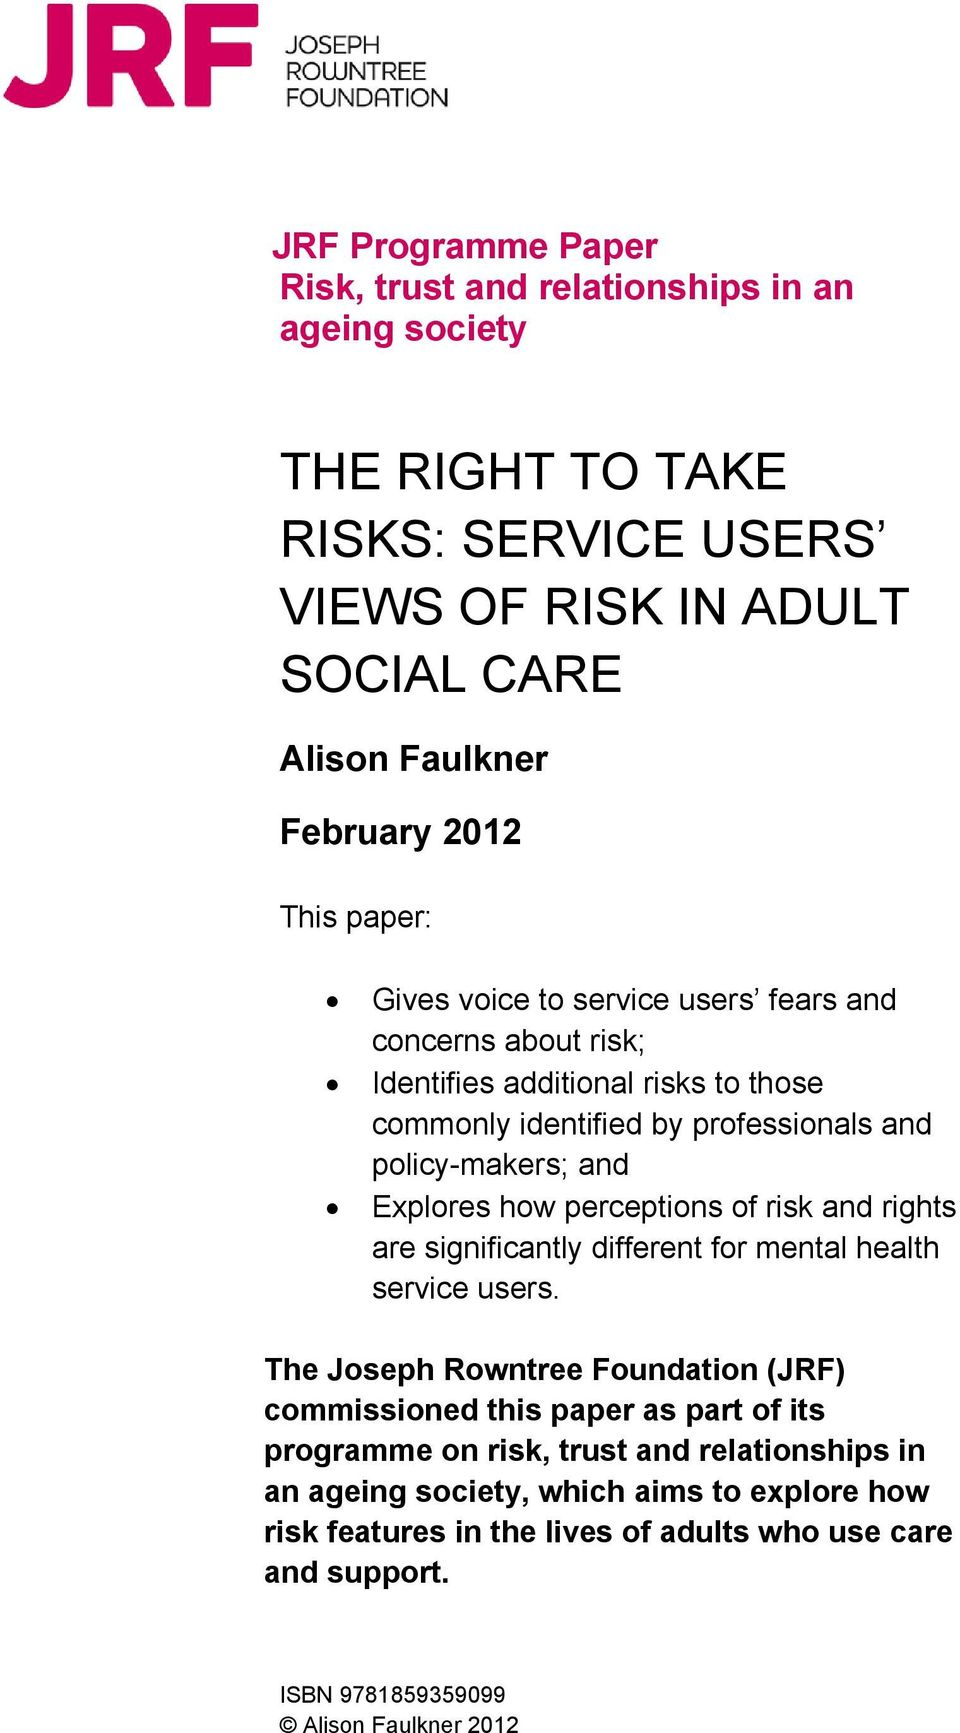 perceptions of risk and rights are significantly different for mental health service users.